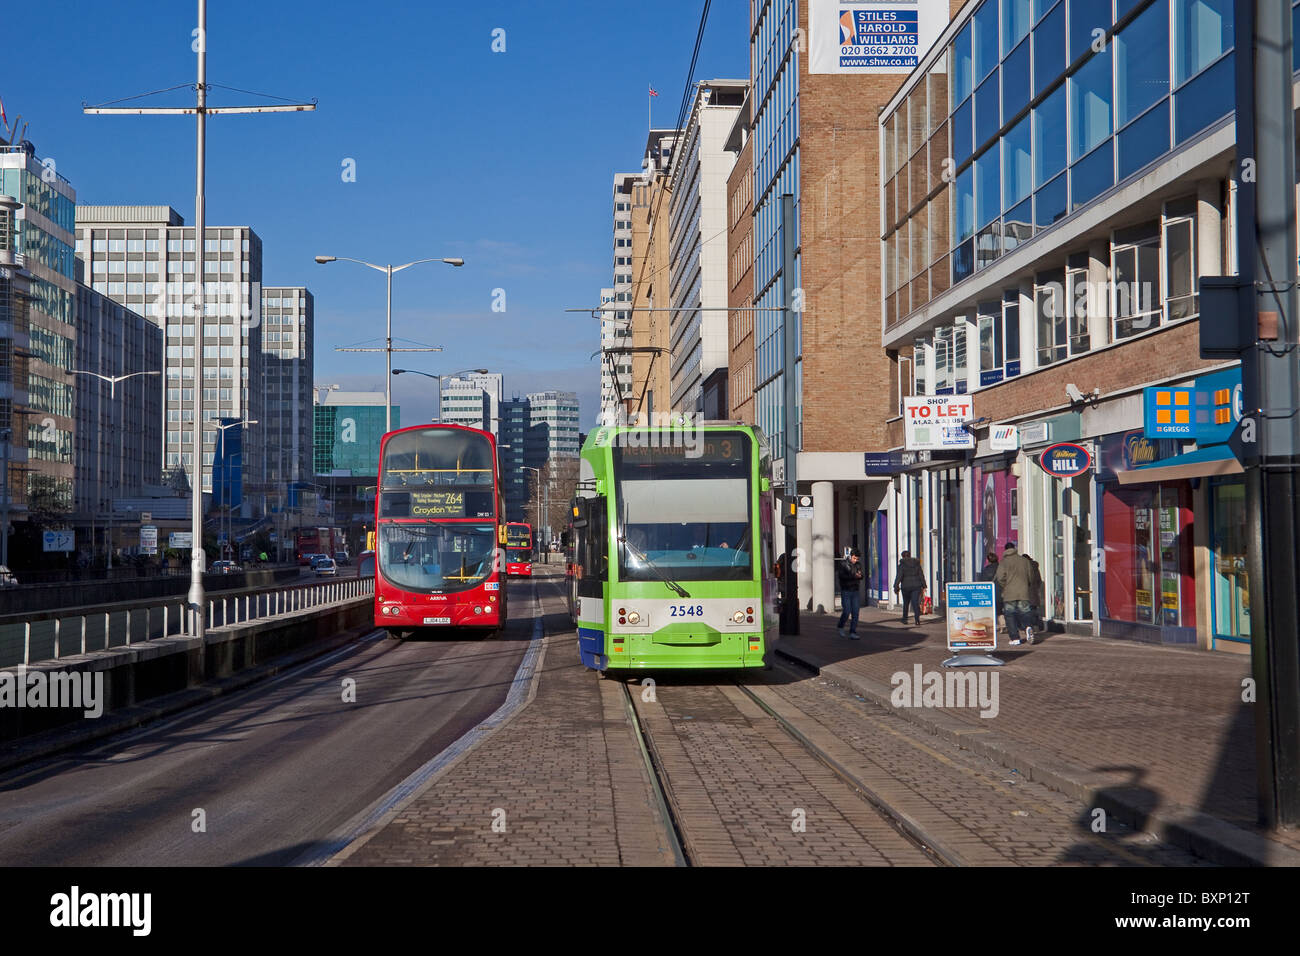 Central Croydon December 2010 - Stock Image